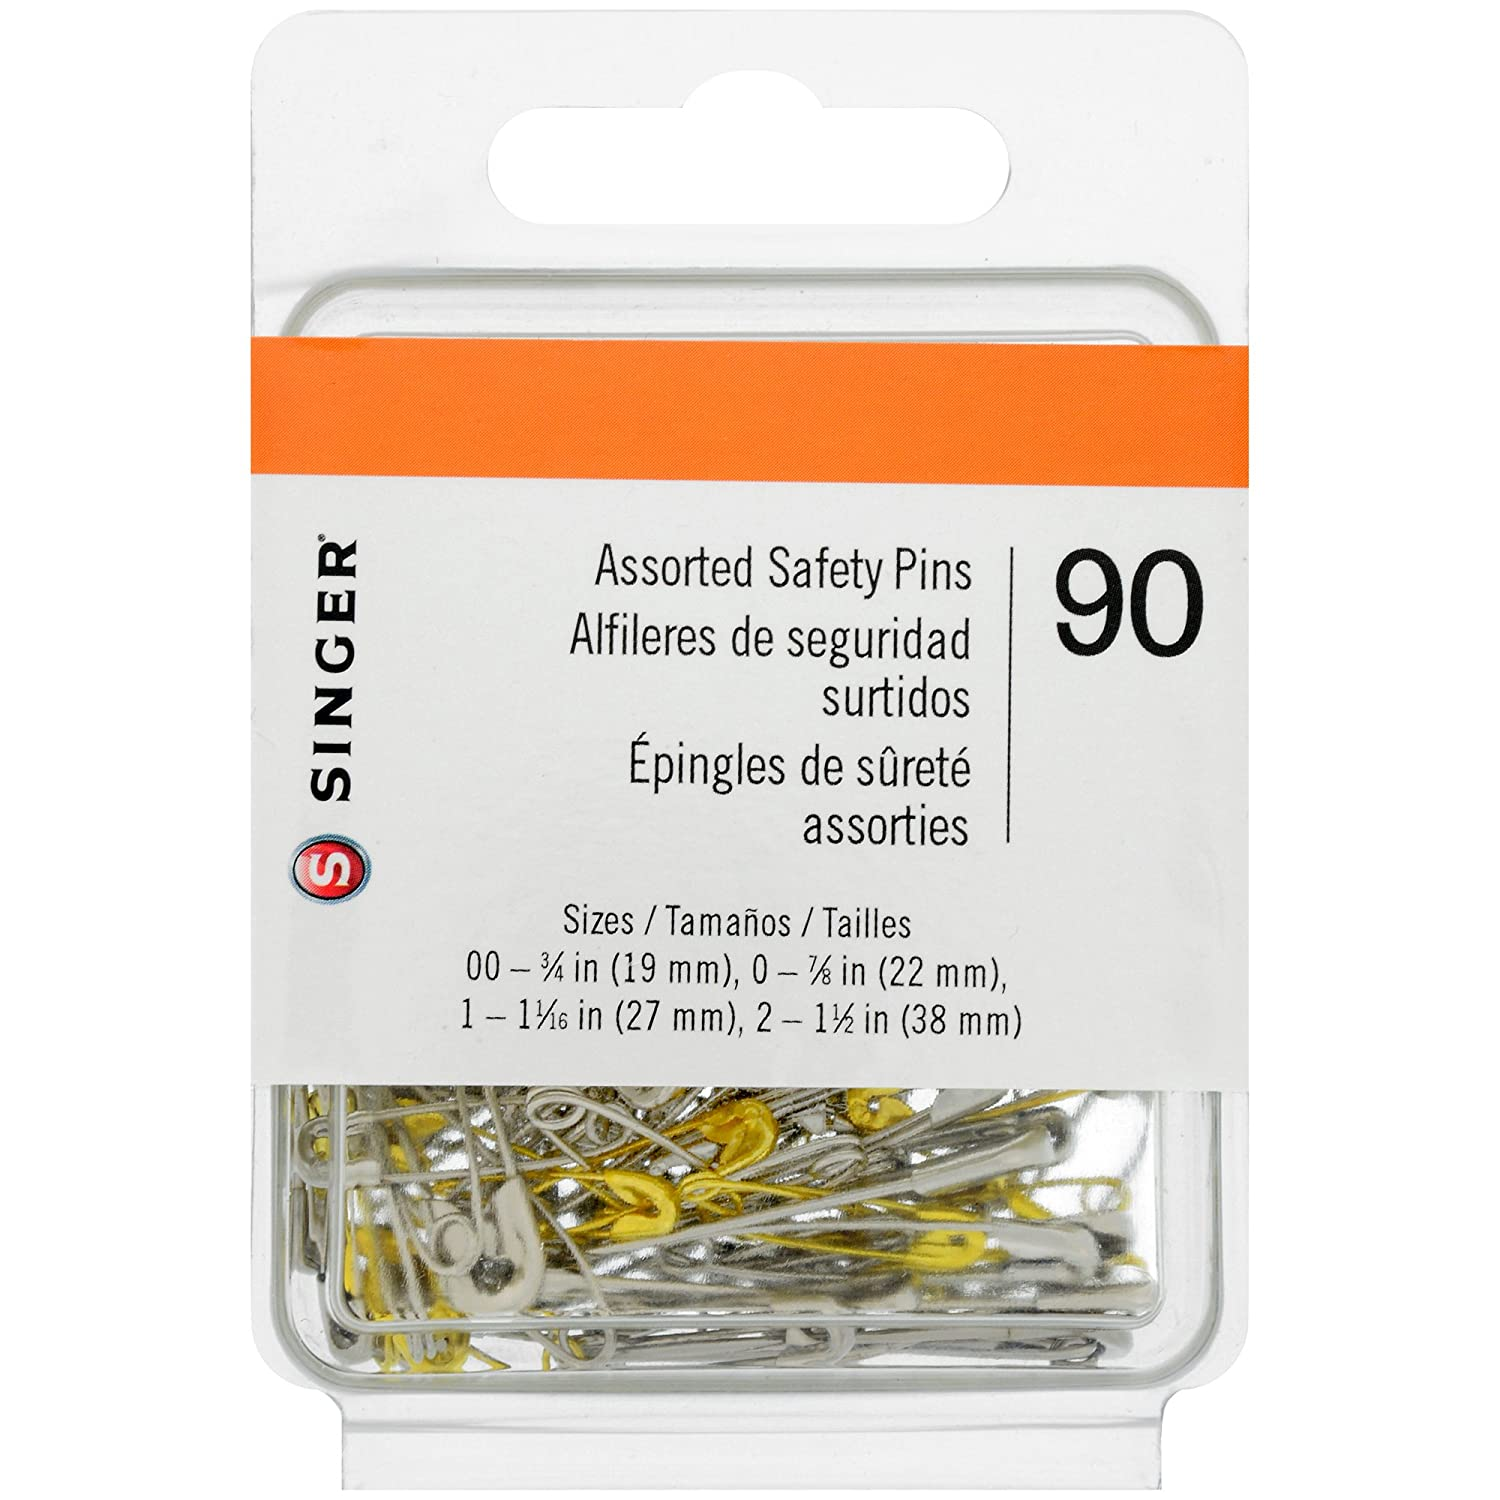 Singer Asst Safety Pins, Multisize, 90-Count, Size 00-2 Pkg Dyno Merchandise 00221